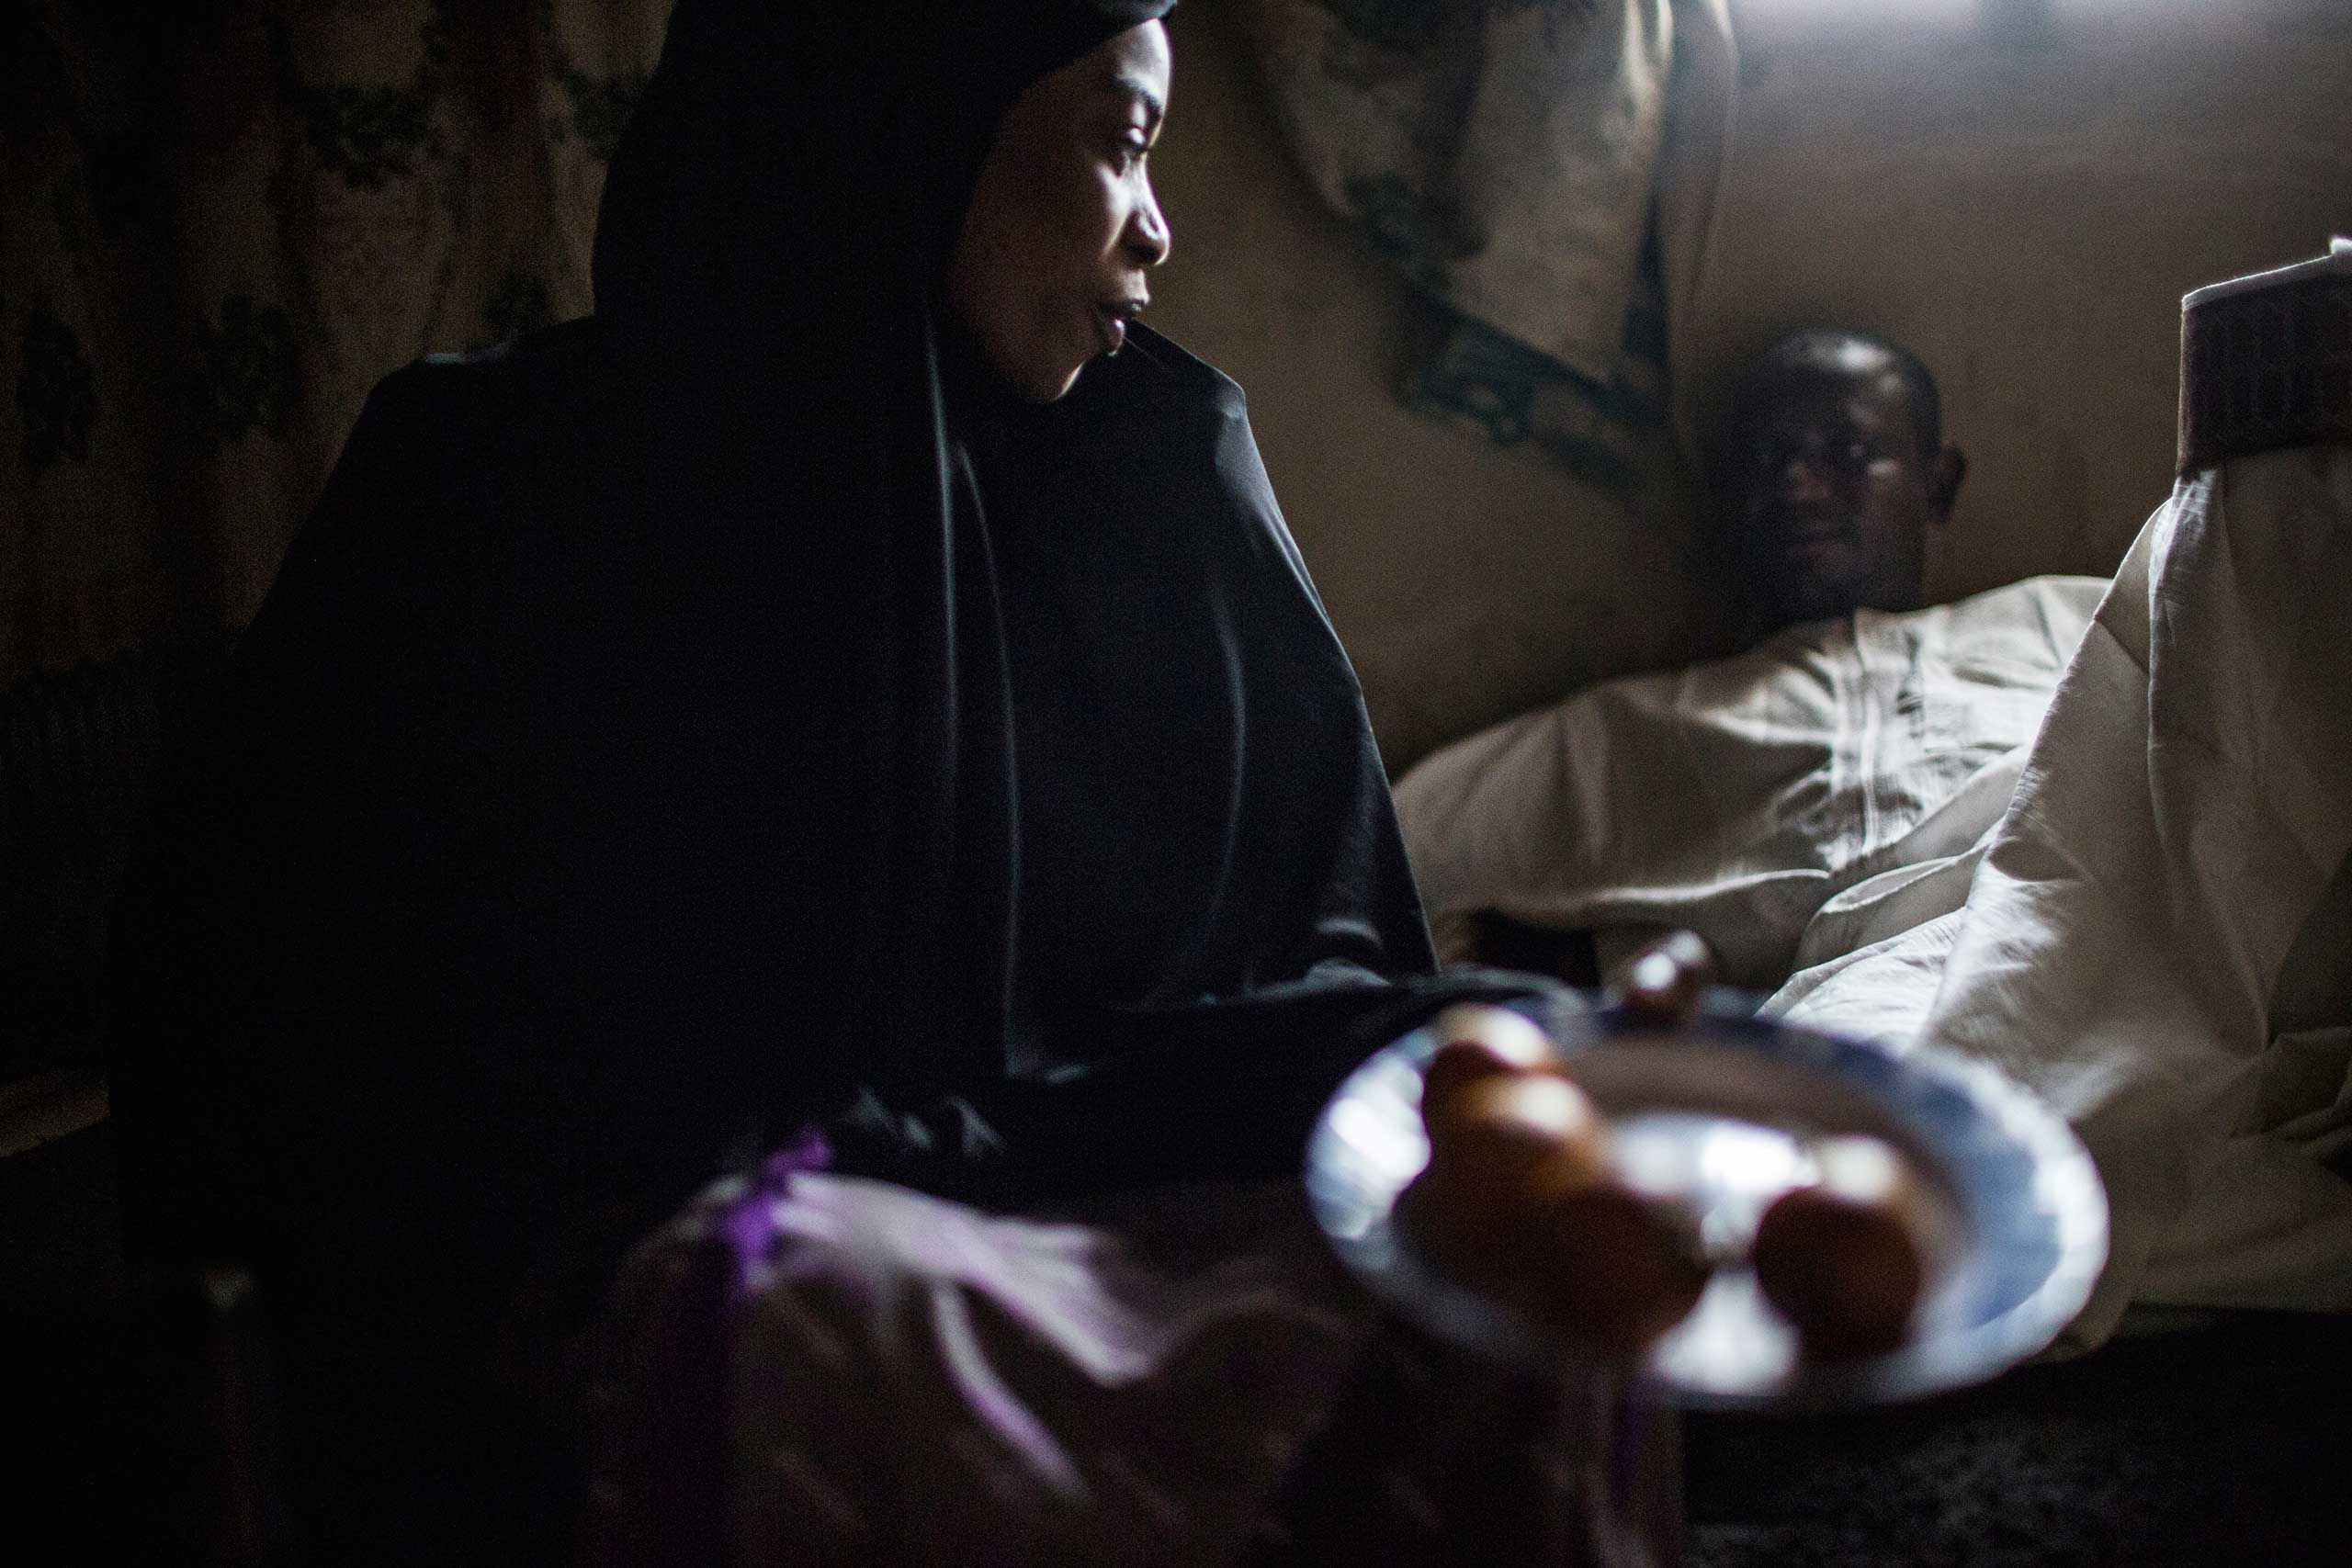 Rabi Tale, a romance novelist, sits at home with one of her suitors, Kano, Northern Nigeria, Feb. 23, 2014.